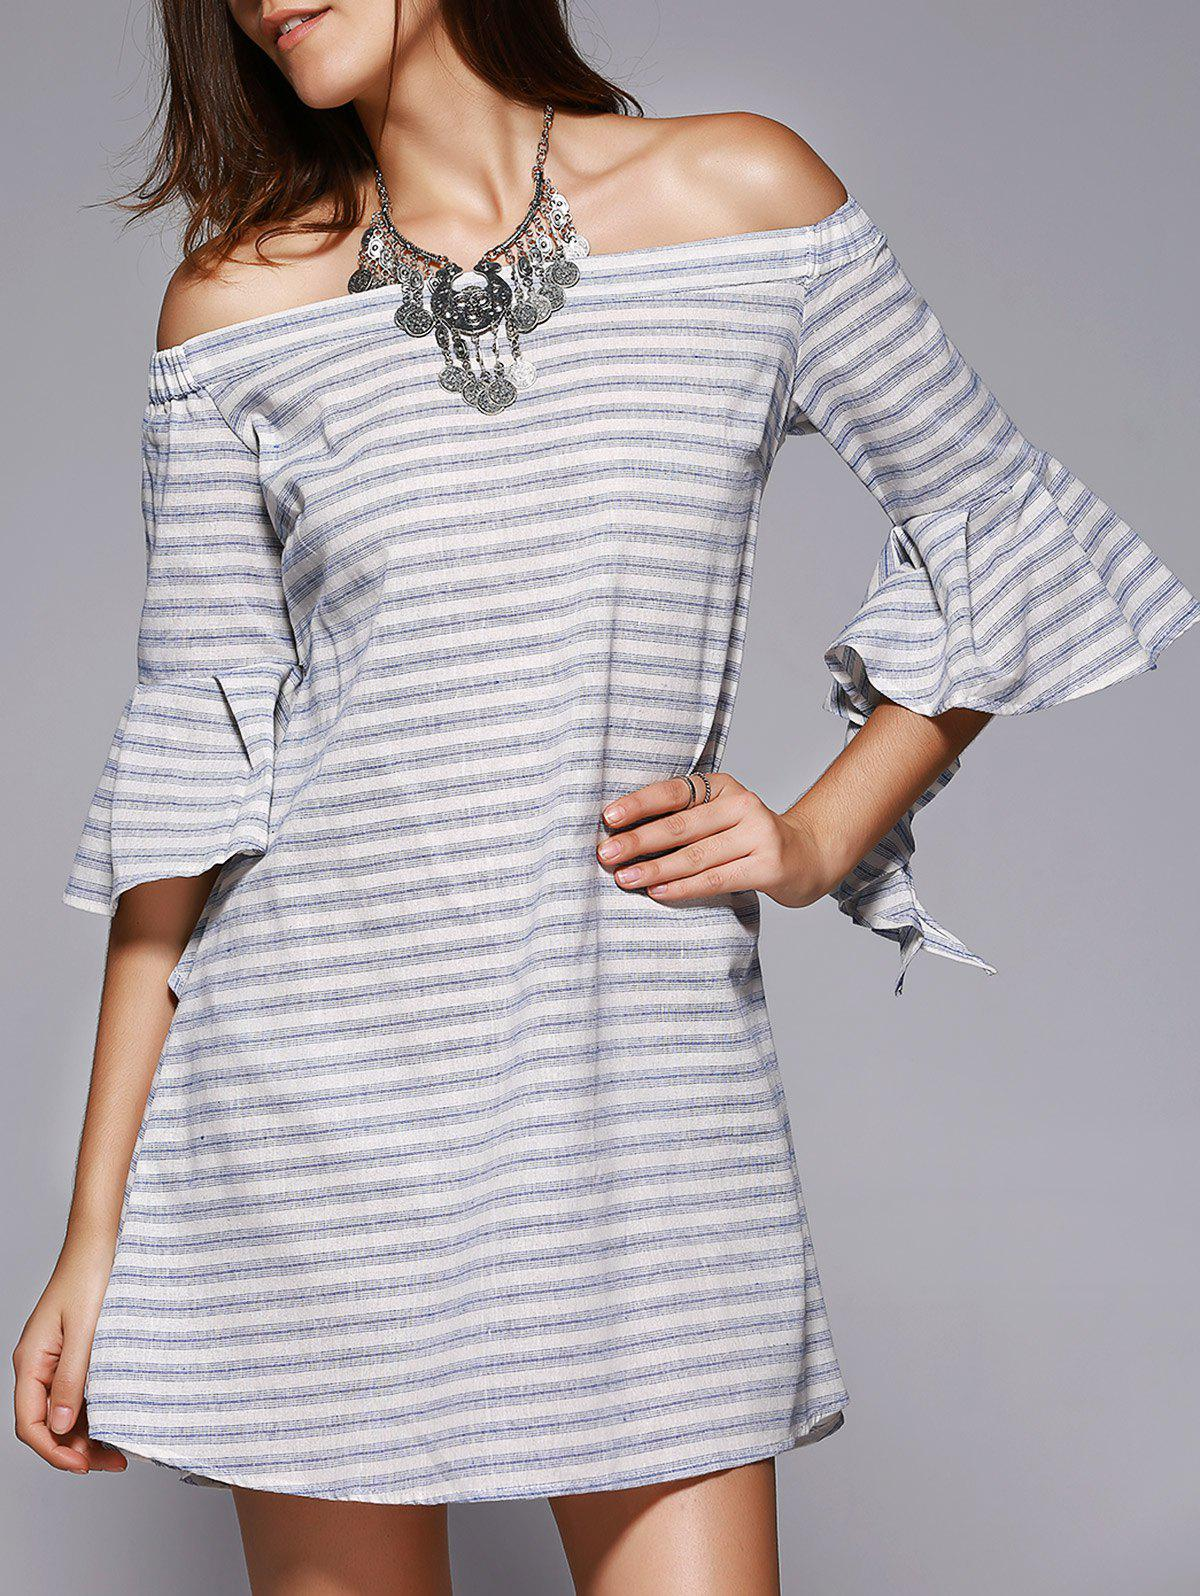 Chic Off-The-Shoulder Cut Out Striped Dress For Women